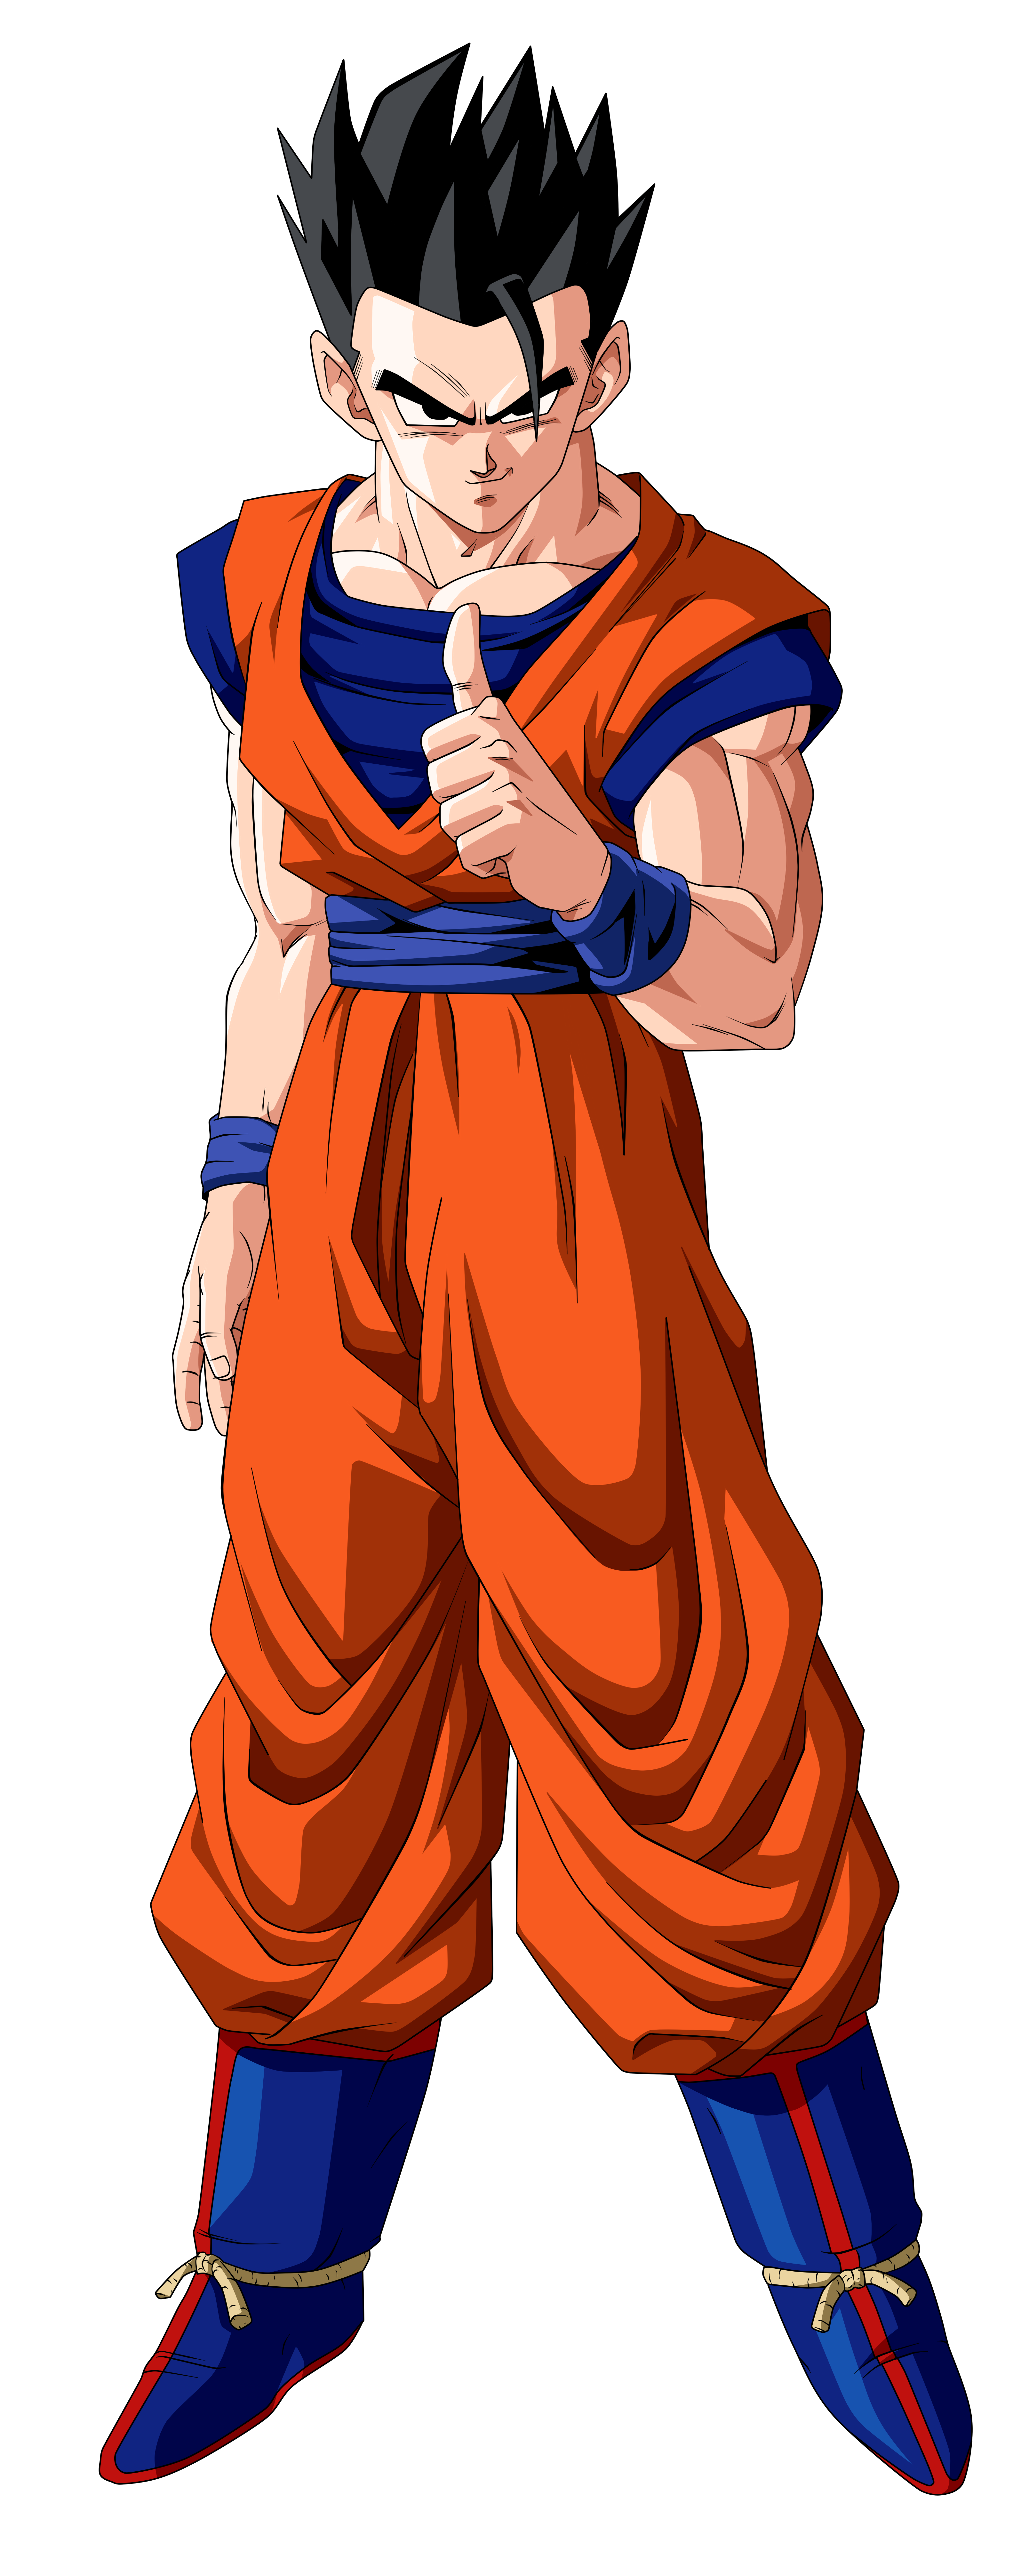 Why Do They Keep On Forgetting About Ultimate Gohan Ign Boards